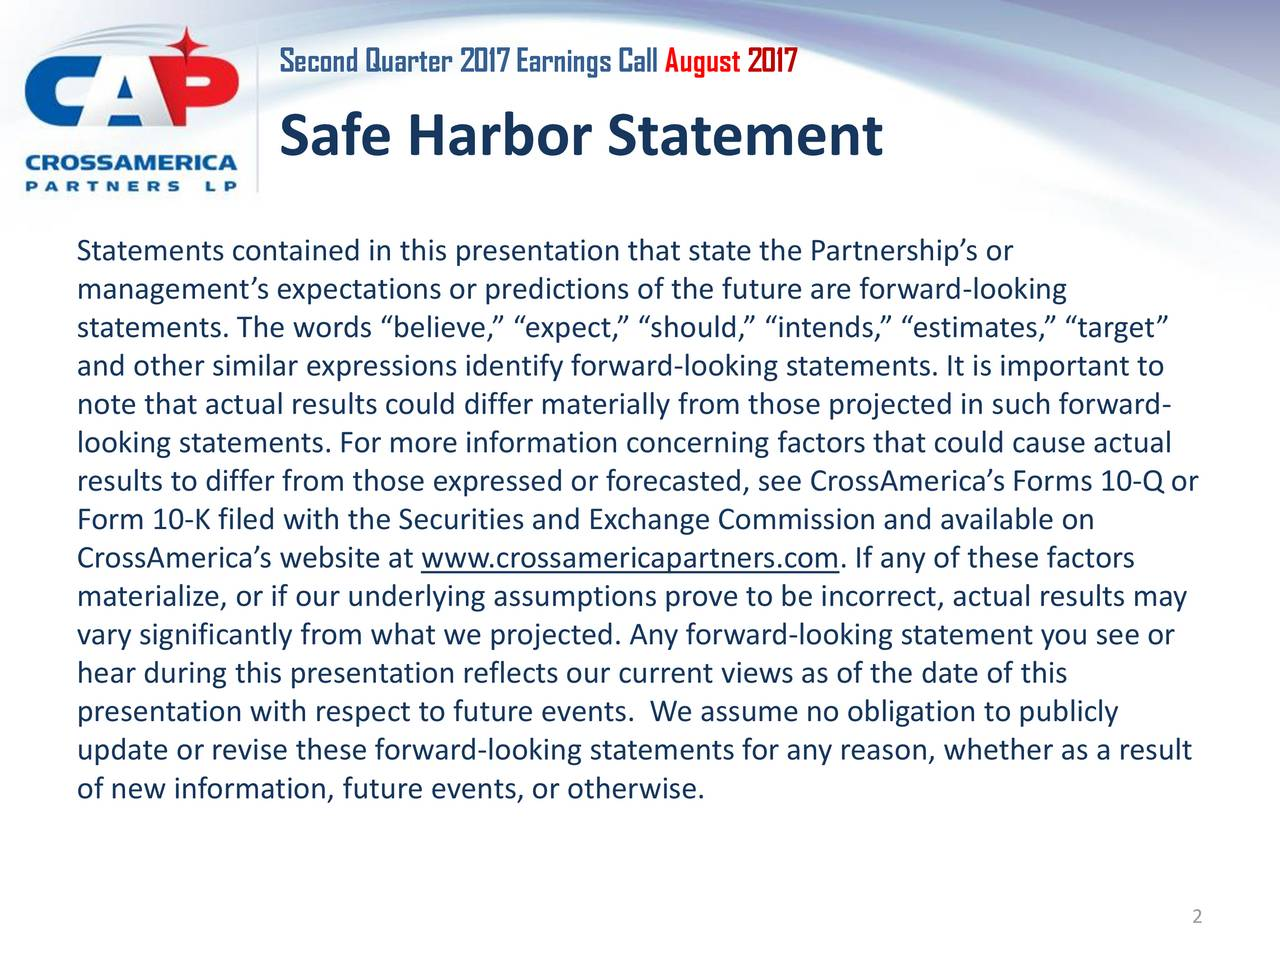 Safe Harbor Statement Statements contained in this presentation that state the Partnerships or managements expectations or predictions of the future are forward-looking statements. The words believe, expect, should, intends, estimates, target and other similar expressions identify forward-looking statements. It is important to note that actual results could differ materially from those projected in such forward- looking statements. For more information concerning factors that could cause actual results to differ from those expressed or forecasted, see CrossAmericas Forms 10-Q or Form 10-K filed with the Securities and Exchange Commission and available on CrossAmericas website at www.crossamericapartners.com. If any of these factors materialize, or if our underlying assumptions prove to be incorrect, actual results may vary significantly from what we projected. Any forward-looking statement you see or hear during this presentation reflects our current views as of the date of this presentation with respect to future events. We assume no obligation to publicly update or revise these forward-looking statements for any reason, whether as a result of new information, future events, or otherwise. 2